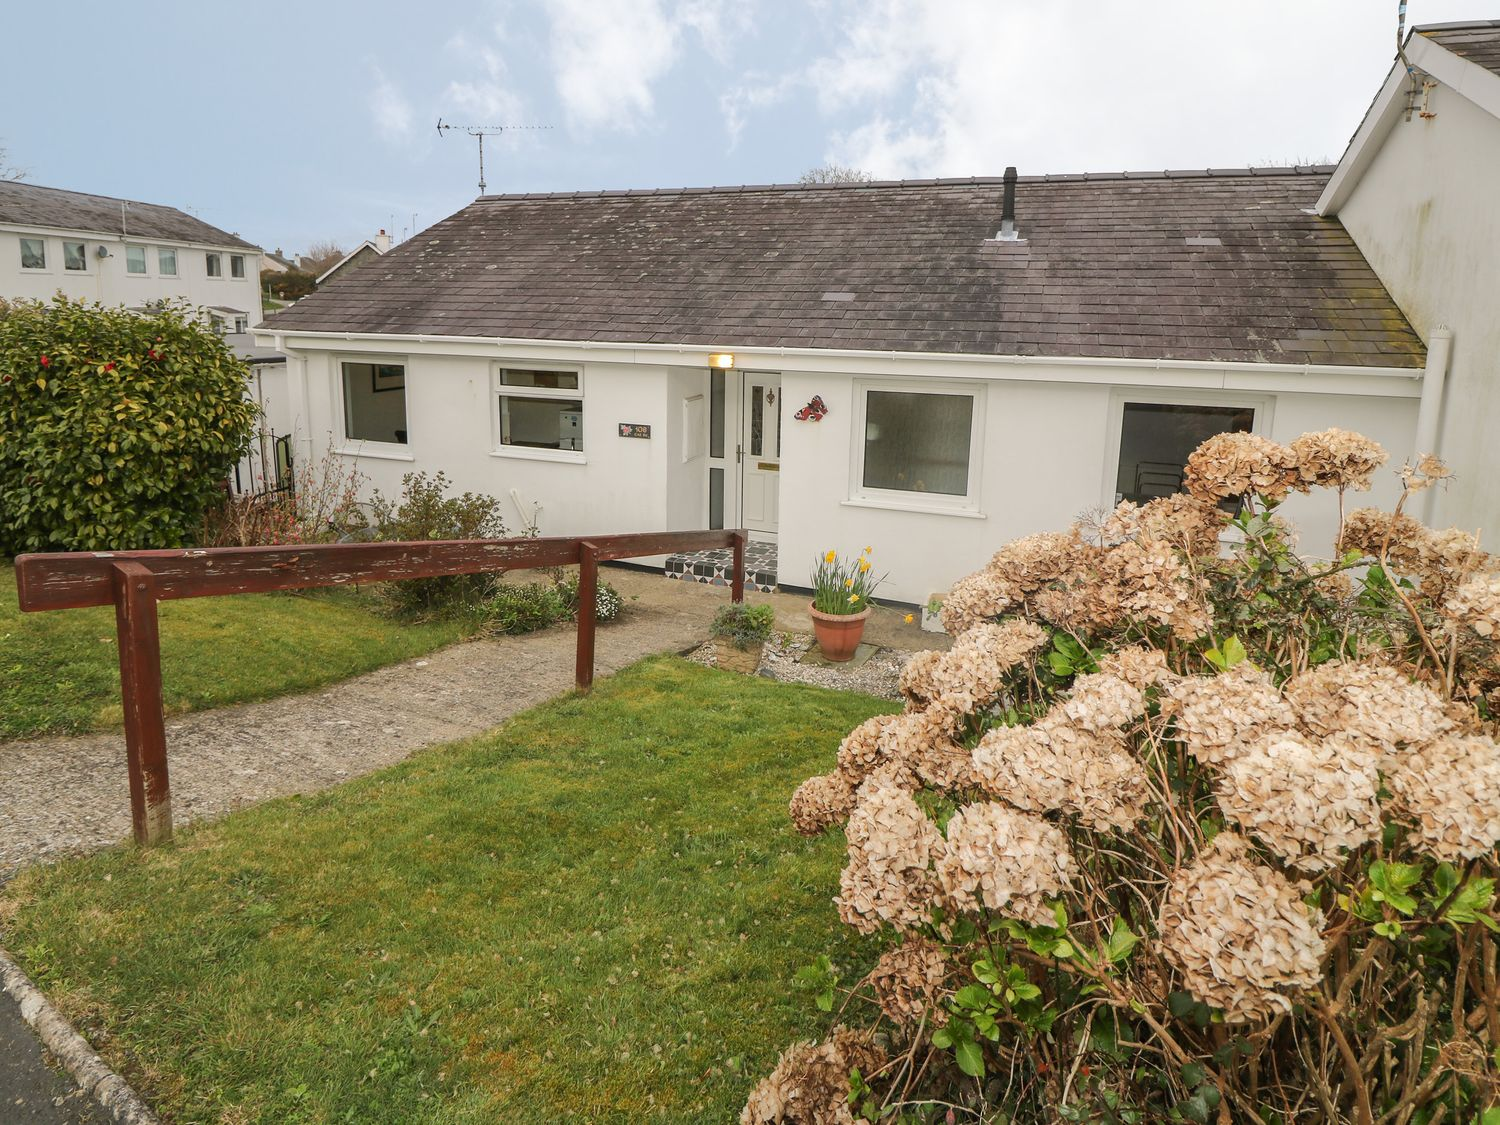 106 Cae Du Estate - North Wales - 949420 - photo 1